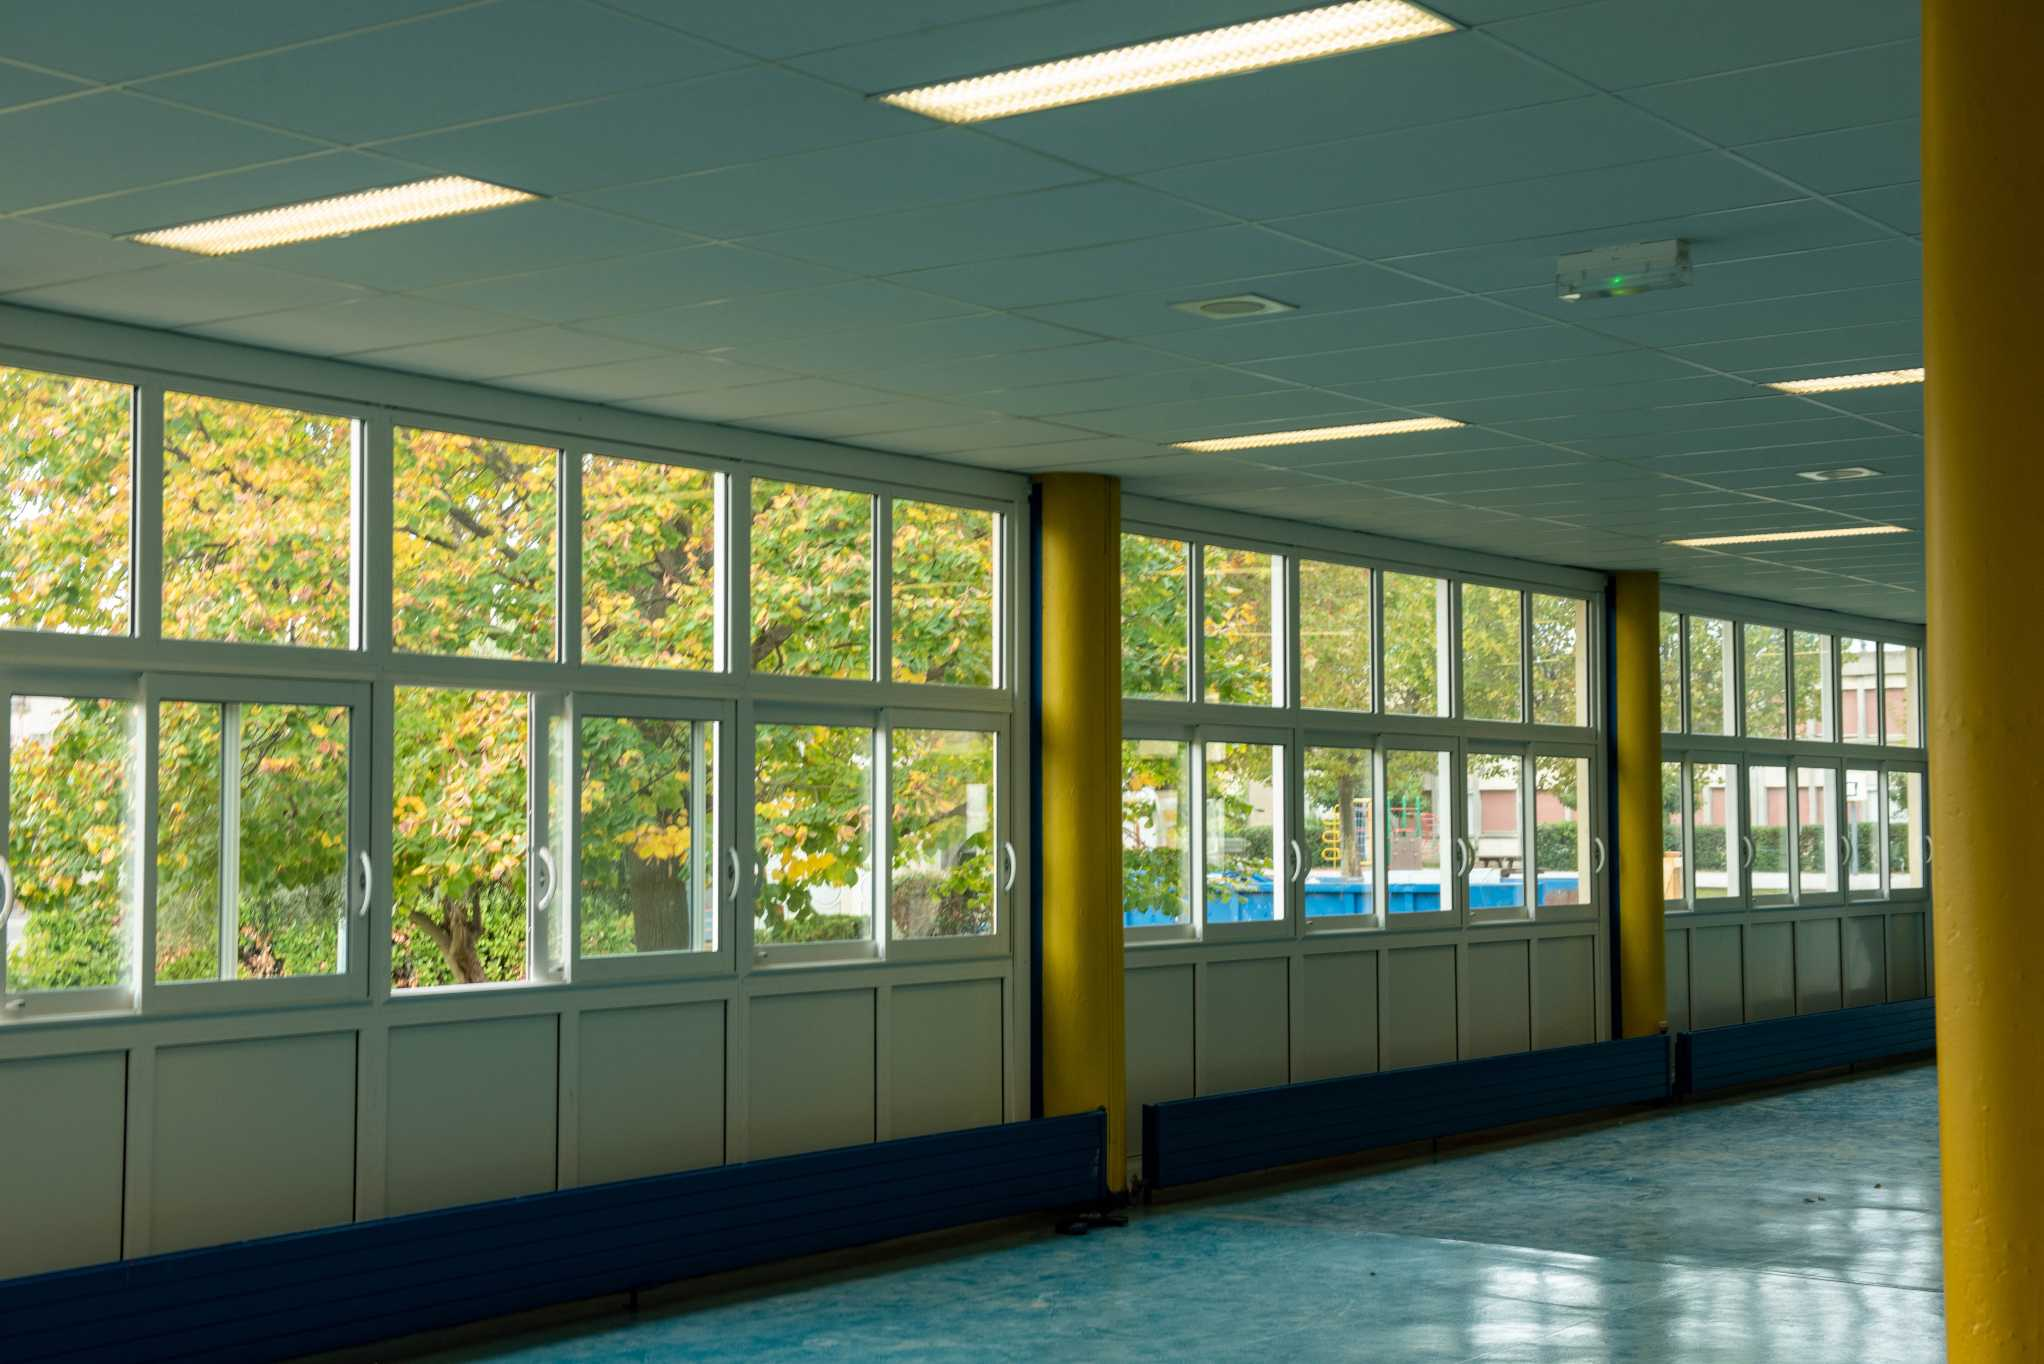 Travaux écoles intercommunales